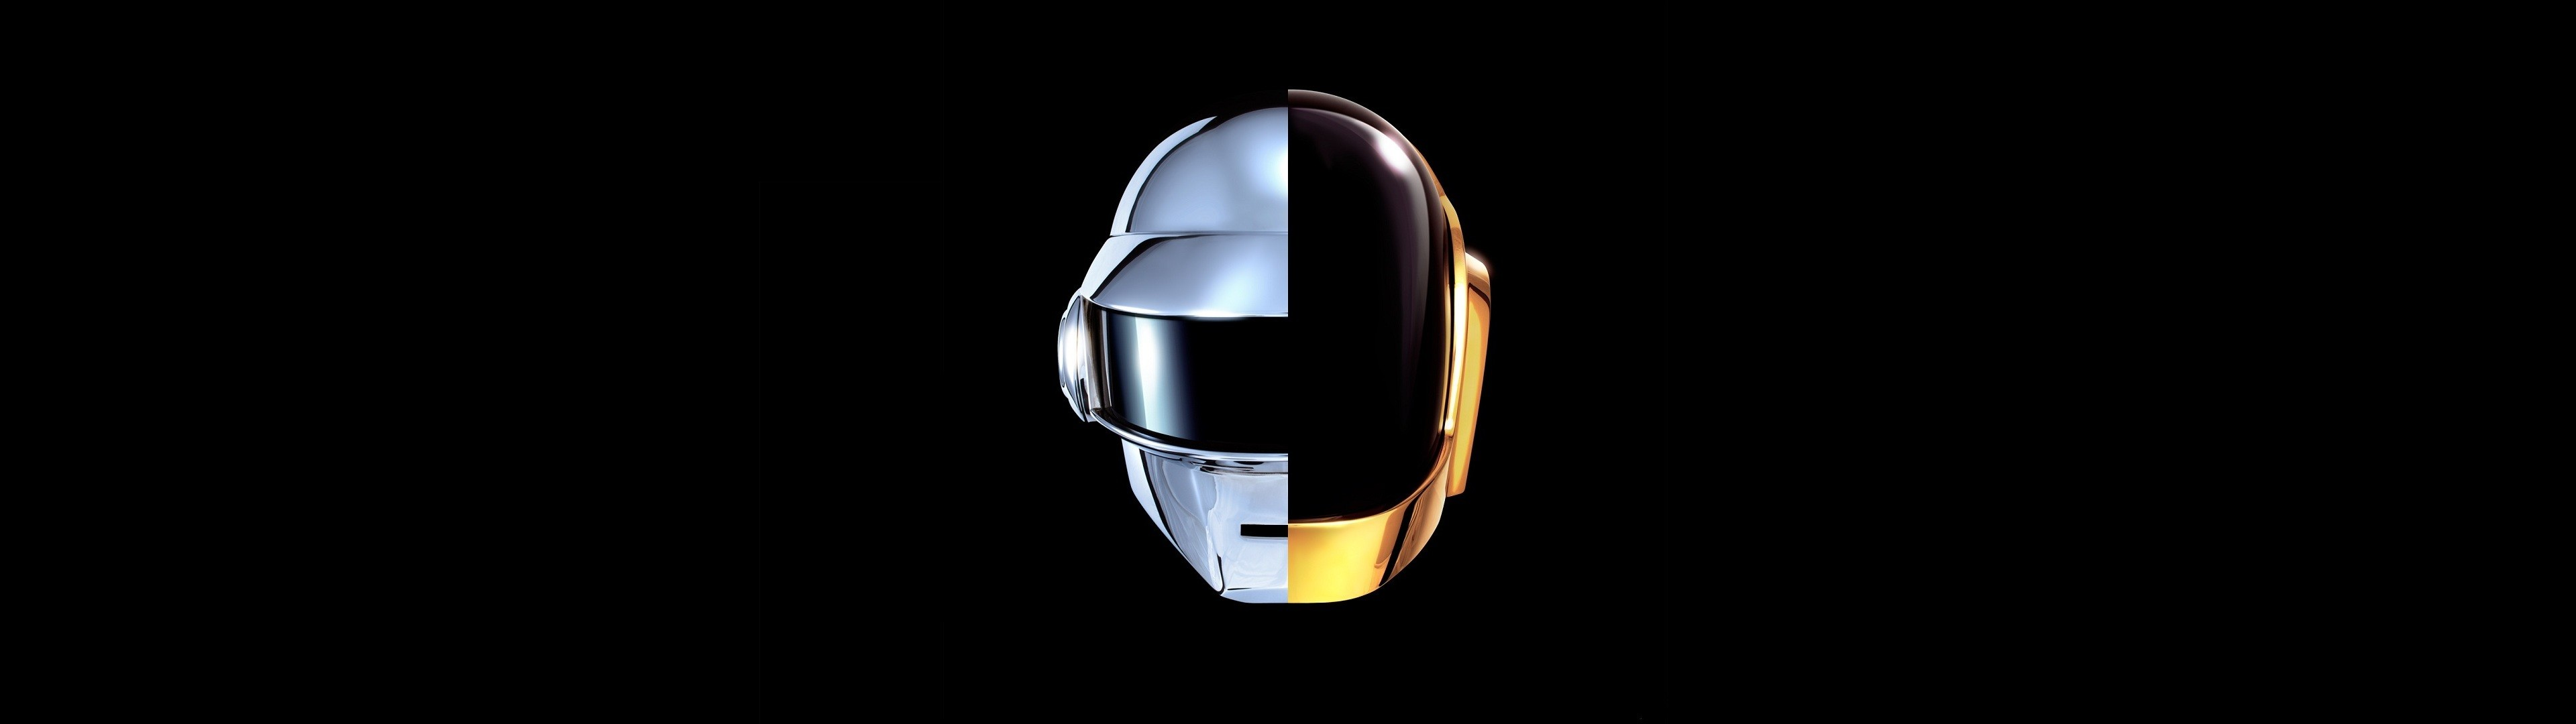 Daft Punk HD Music 4k Wallpapers Images Backgrounds Photos And